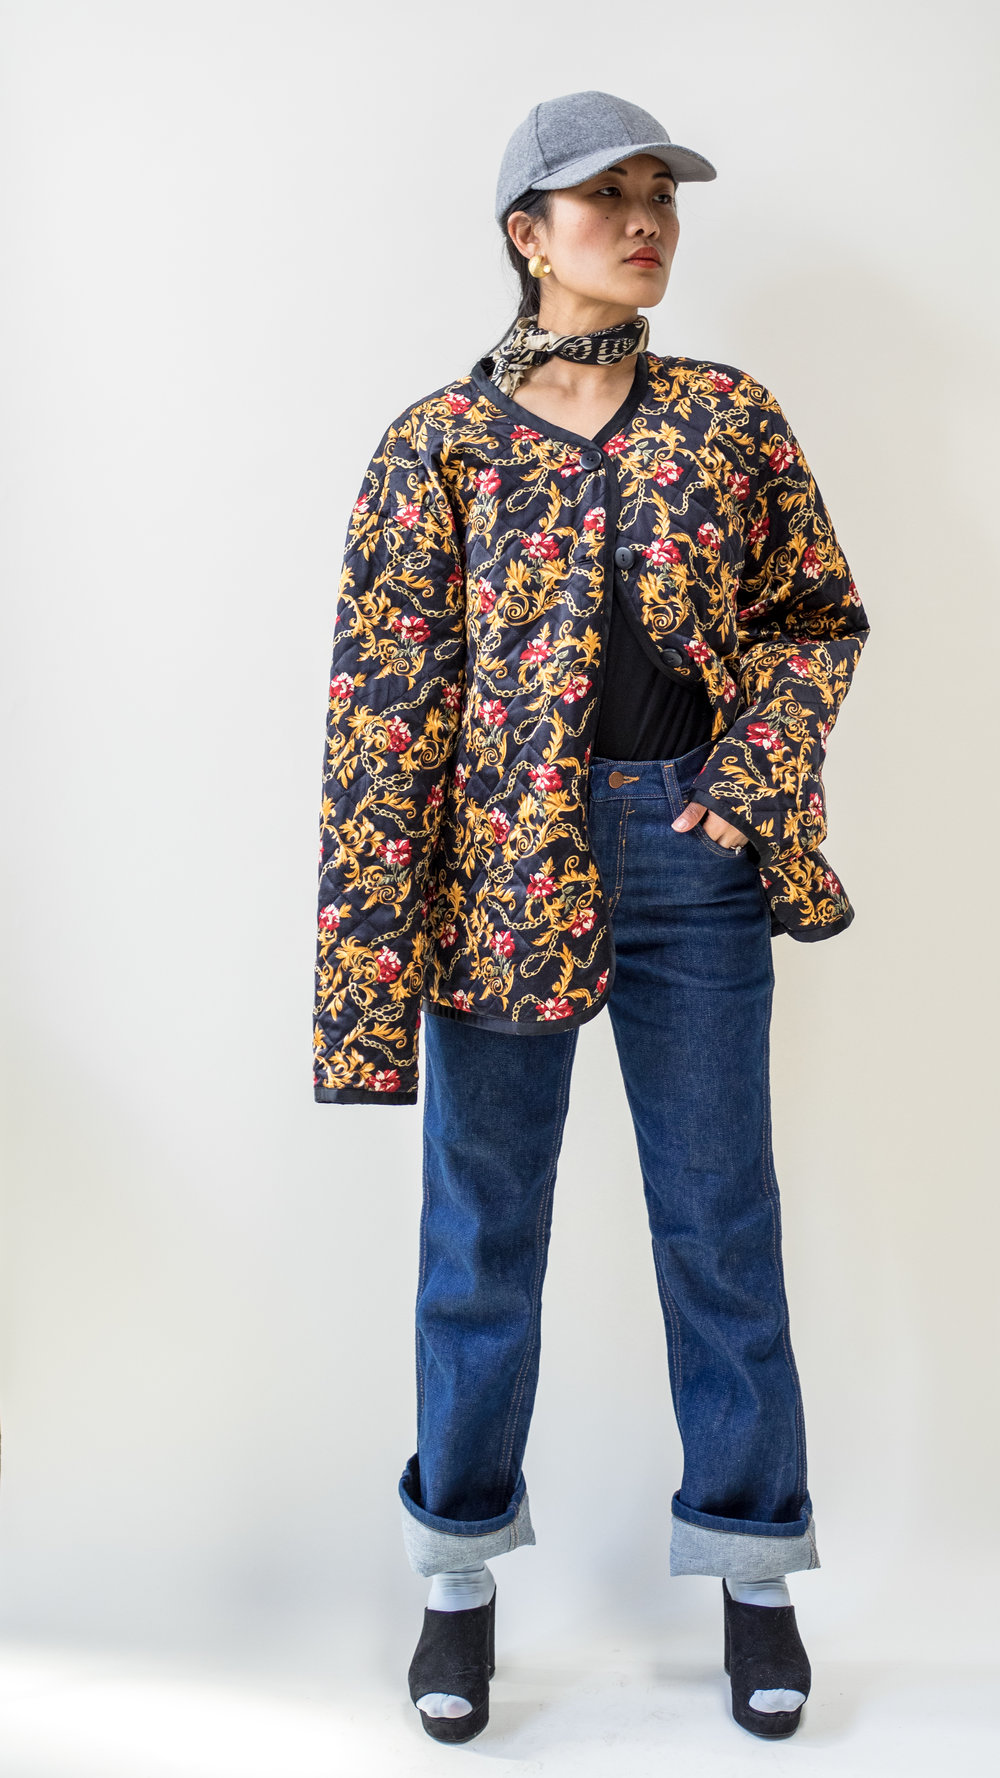 Quilted Floral Pattern Silk Jacket Reversible to Black as well Size 14 (Lrg, Womens) $55